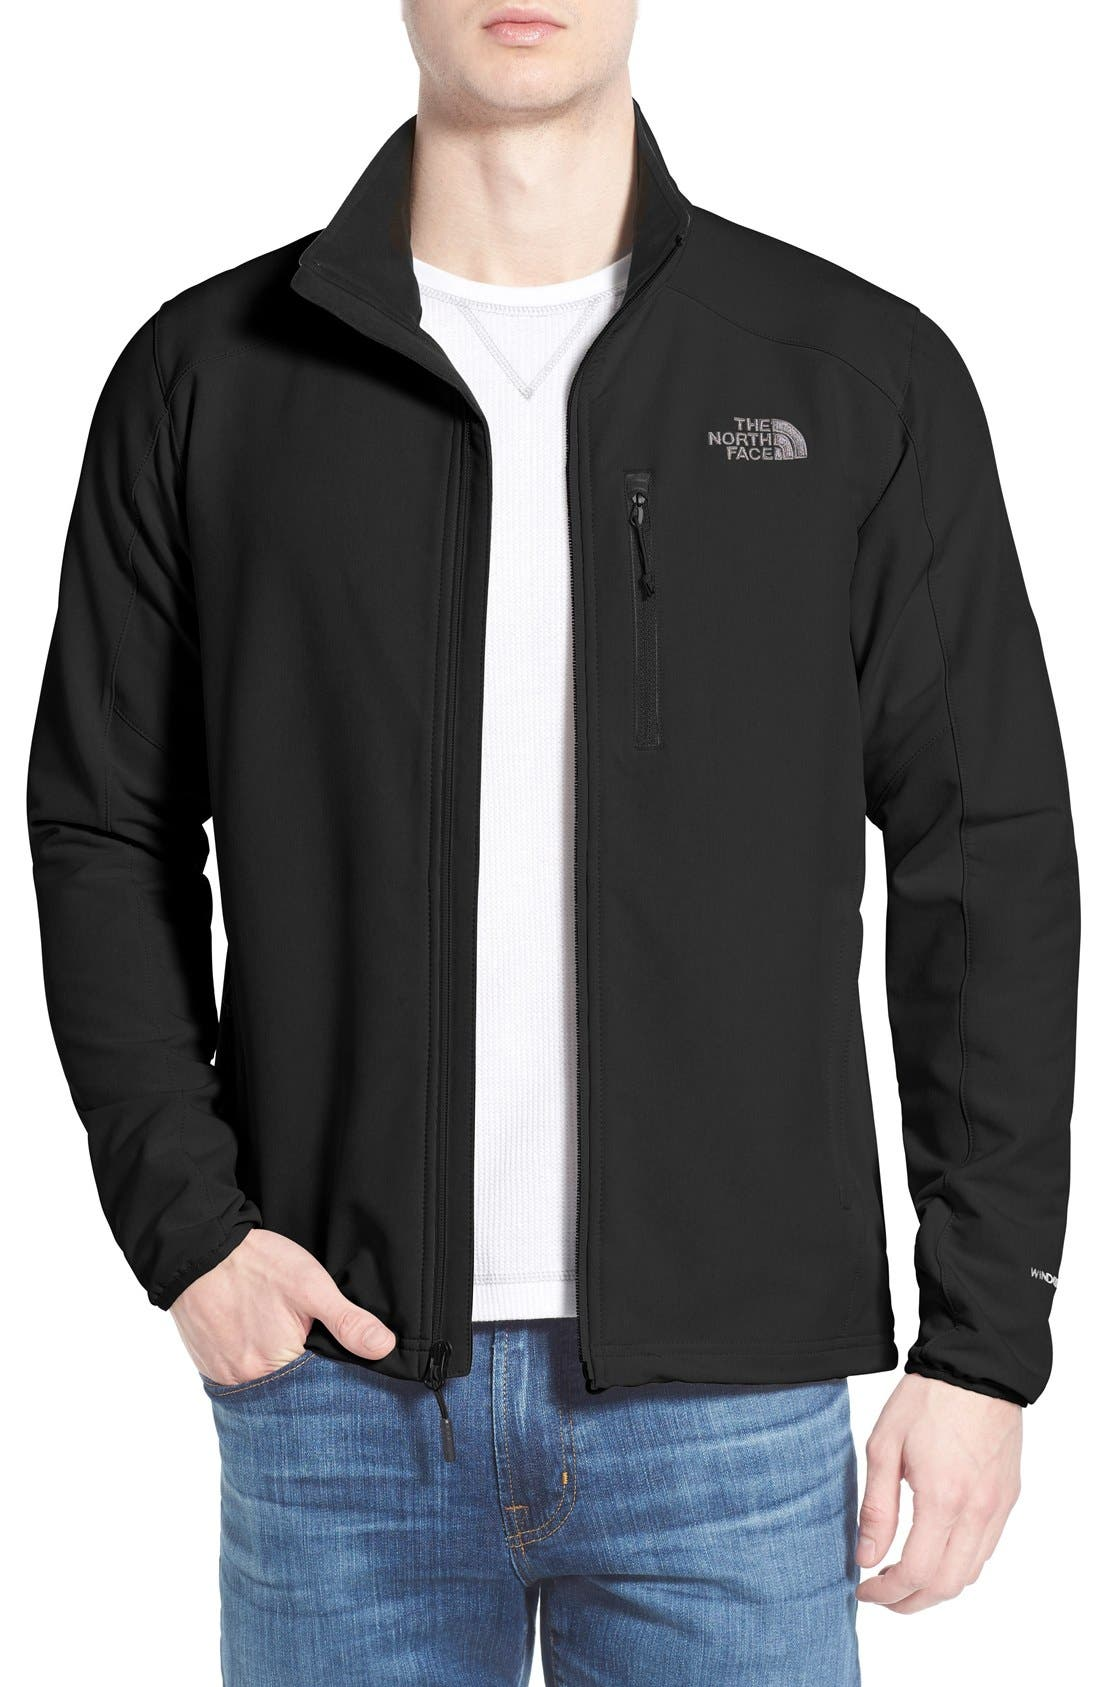 The North Face 'Apex Pneumatic' Full Zip Jacket